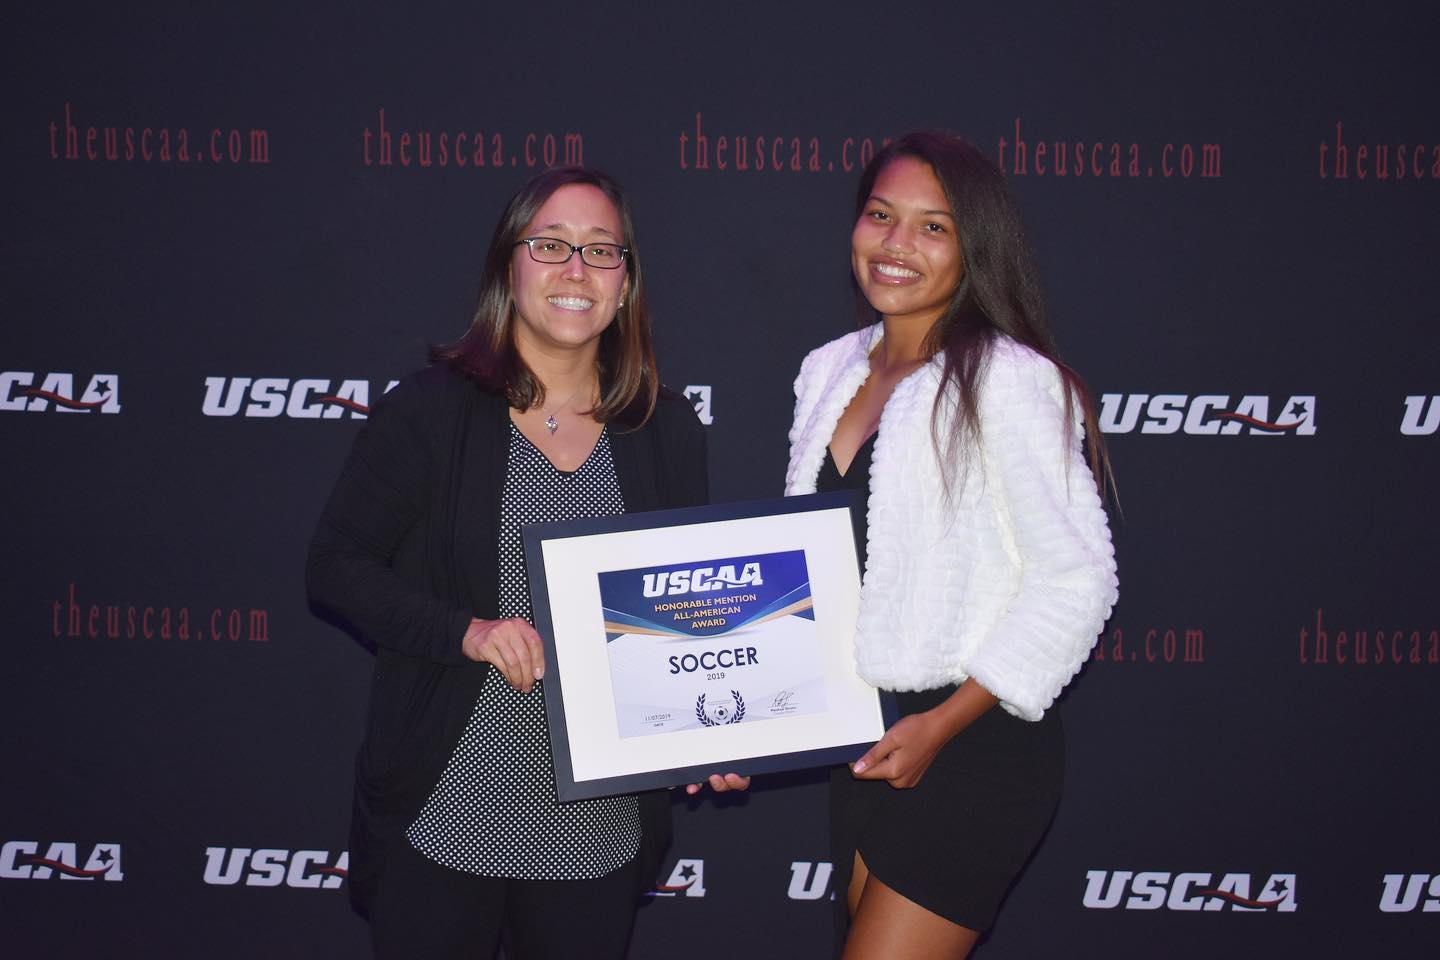 Women's soccer player Dominique Mosley Receiving the All-American second team award